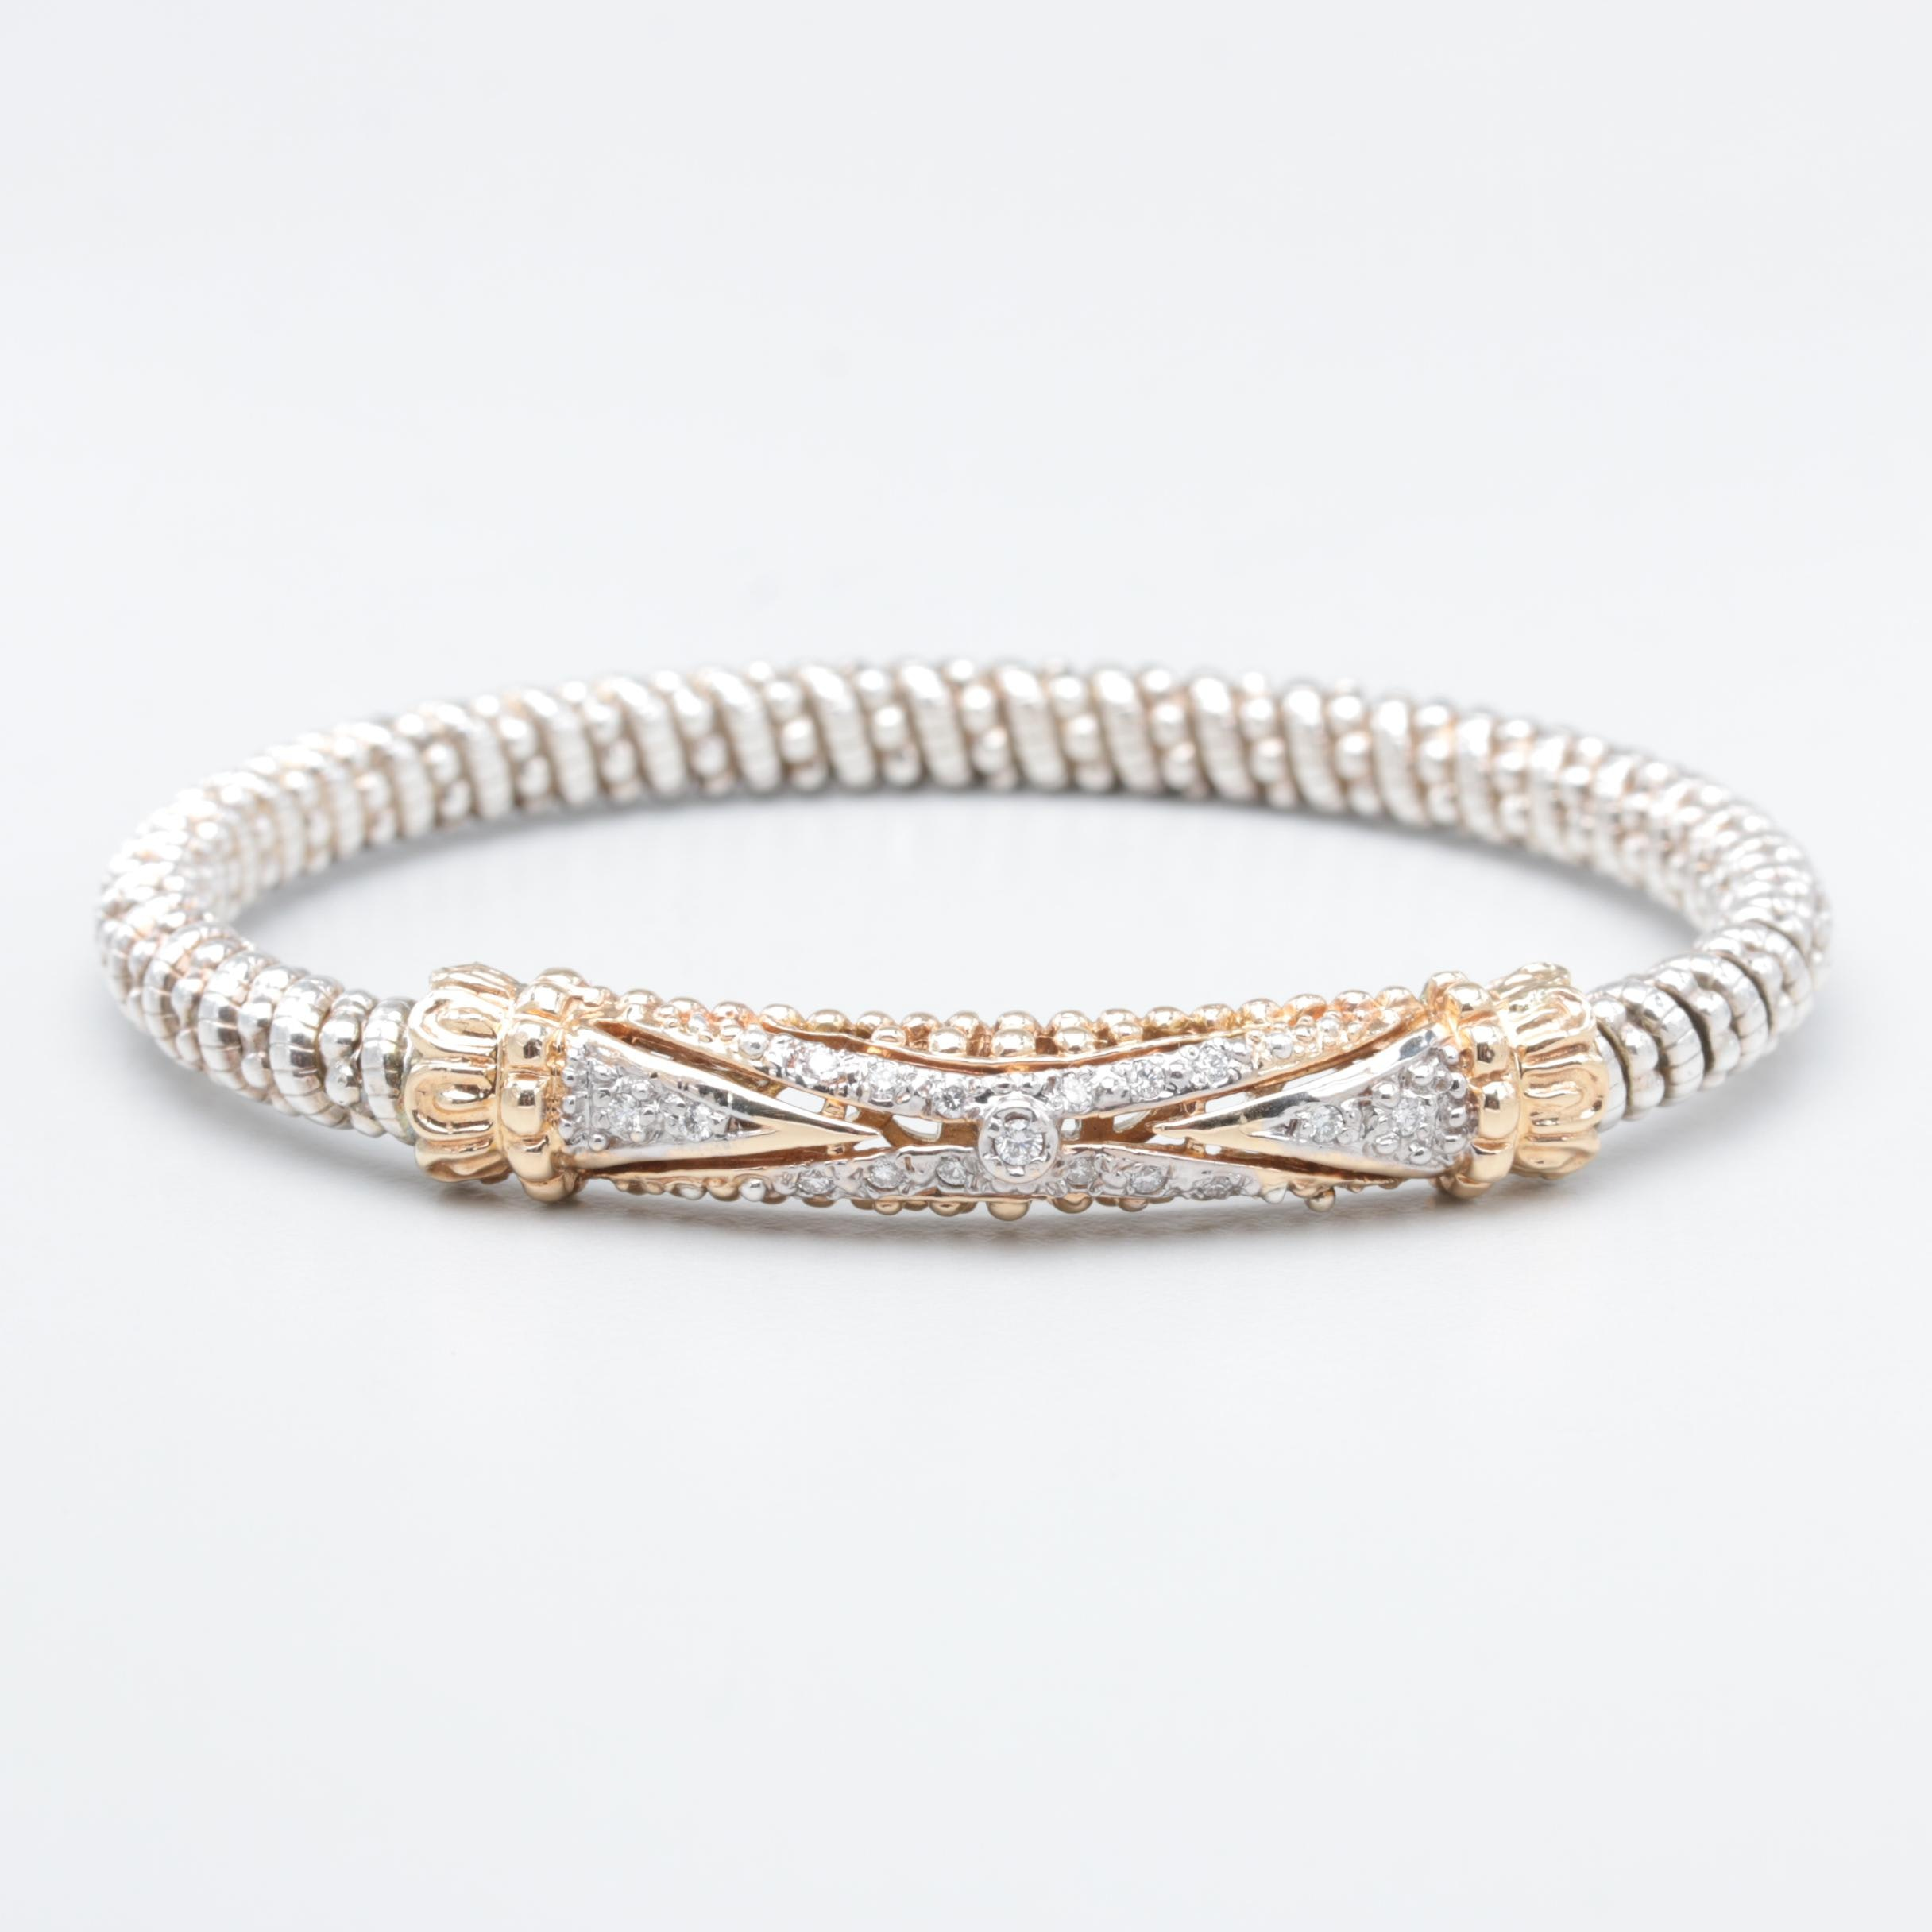 Vahan 14K Yellow Gold and Sterling Silver Diamond Bracelet